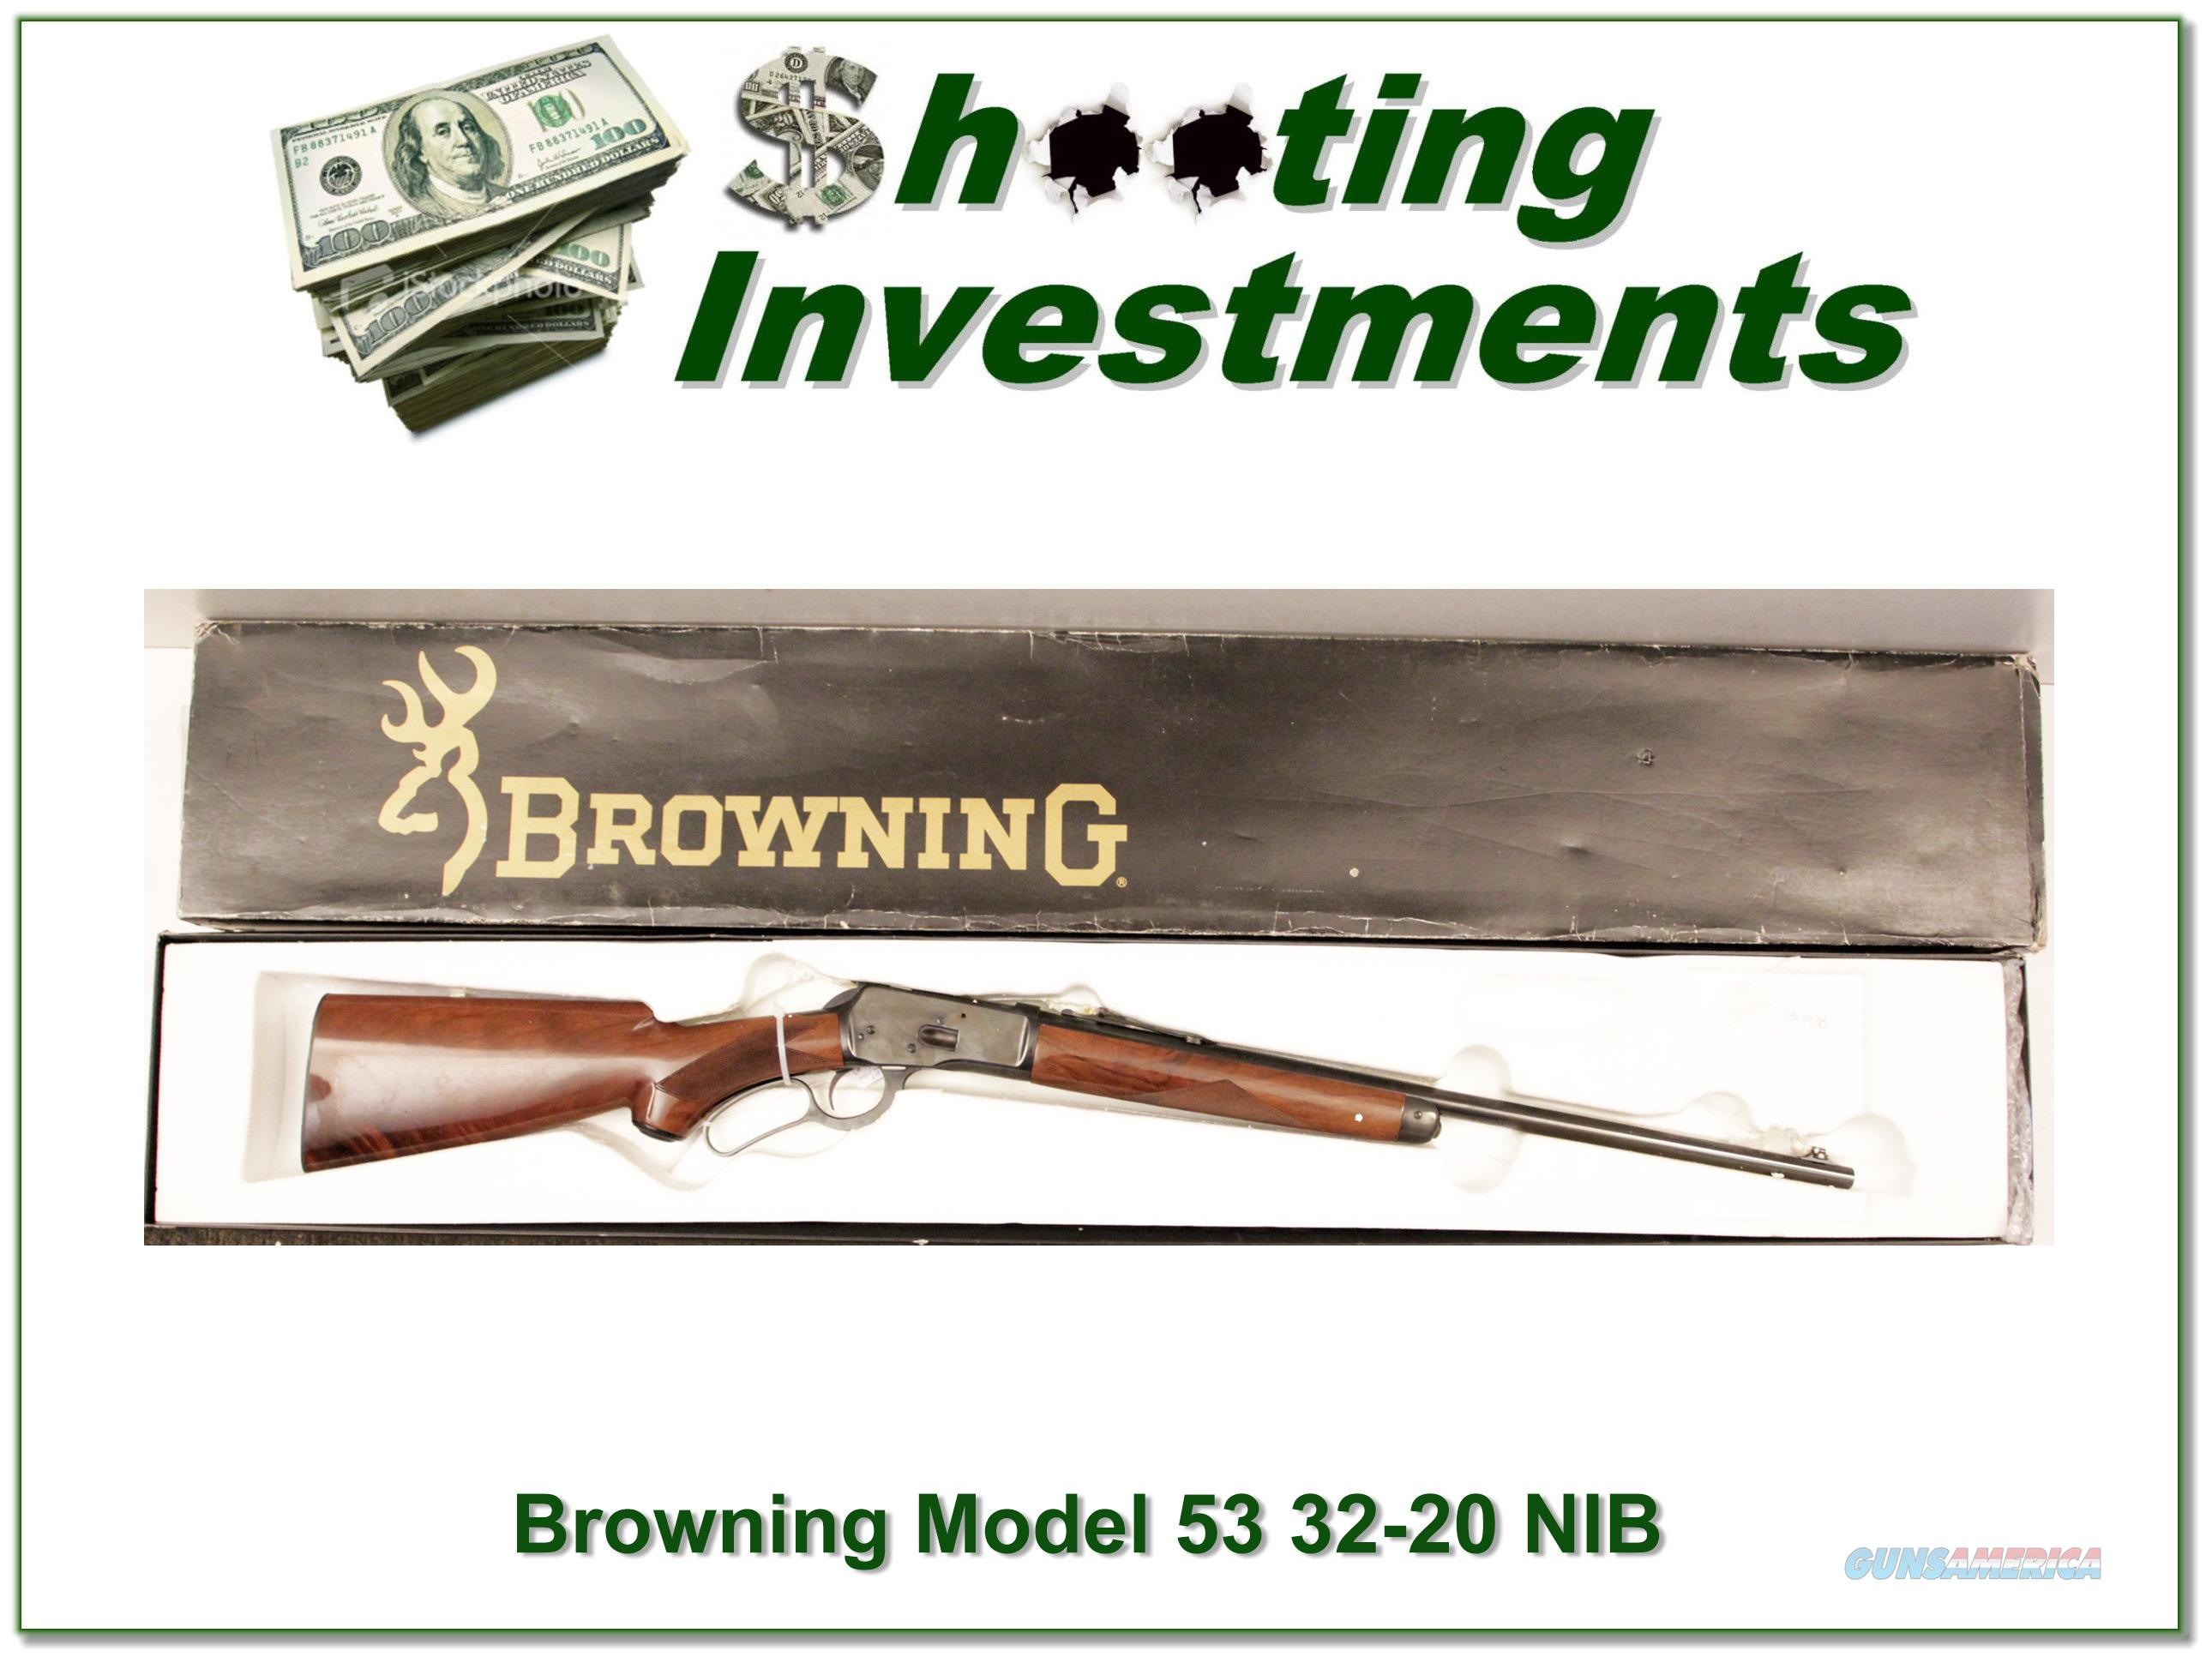 Browning Model 53 32-20 NIB!  Guns > Rifles > Browning Rifles > Lever Action